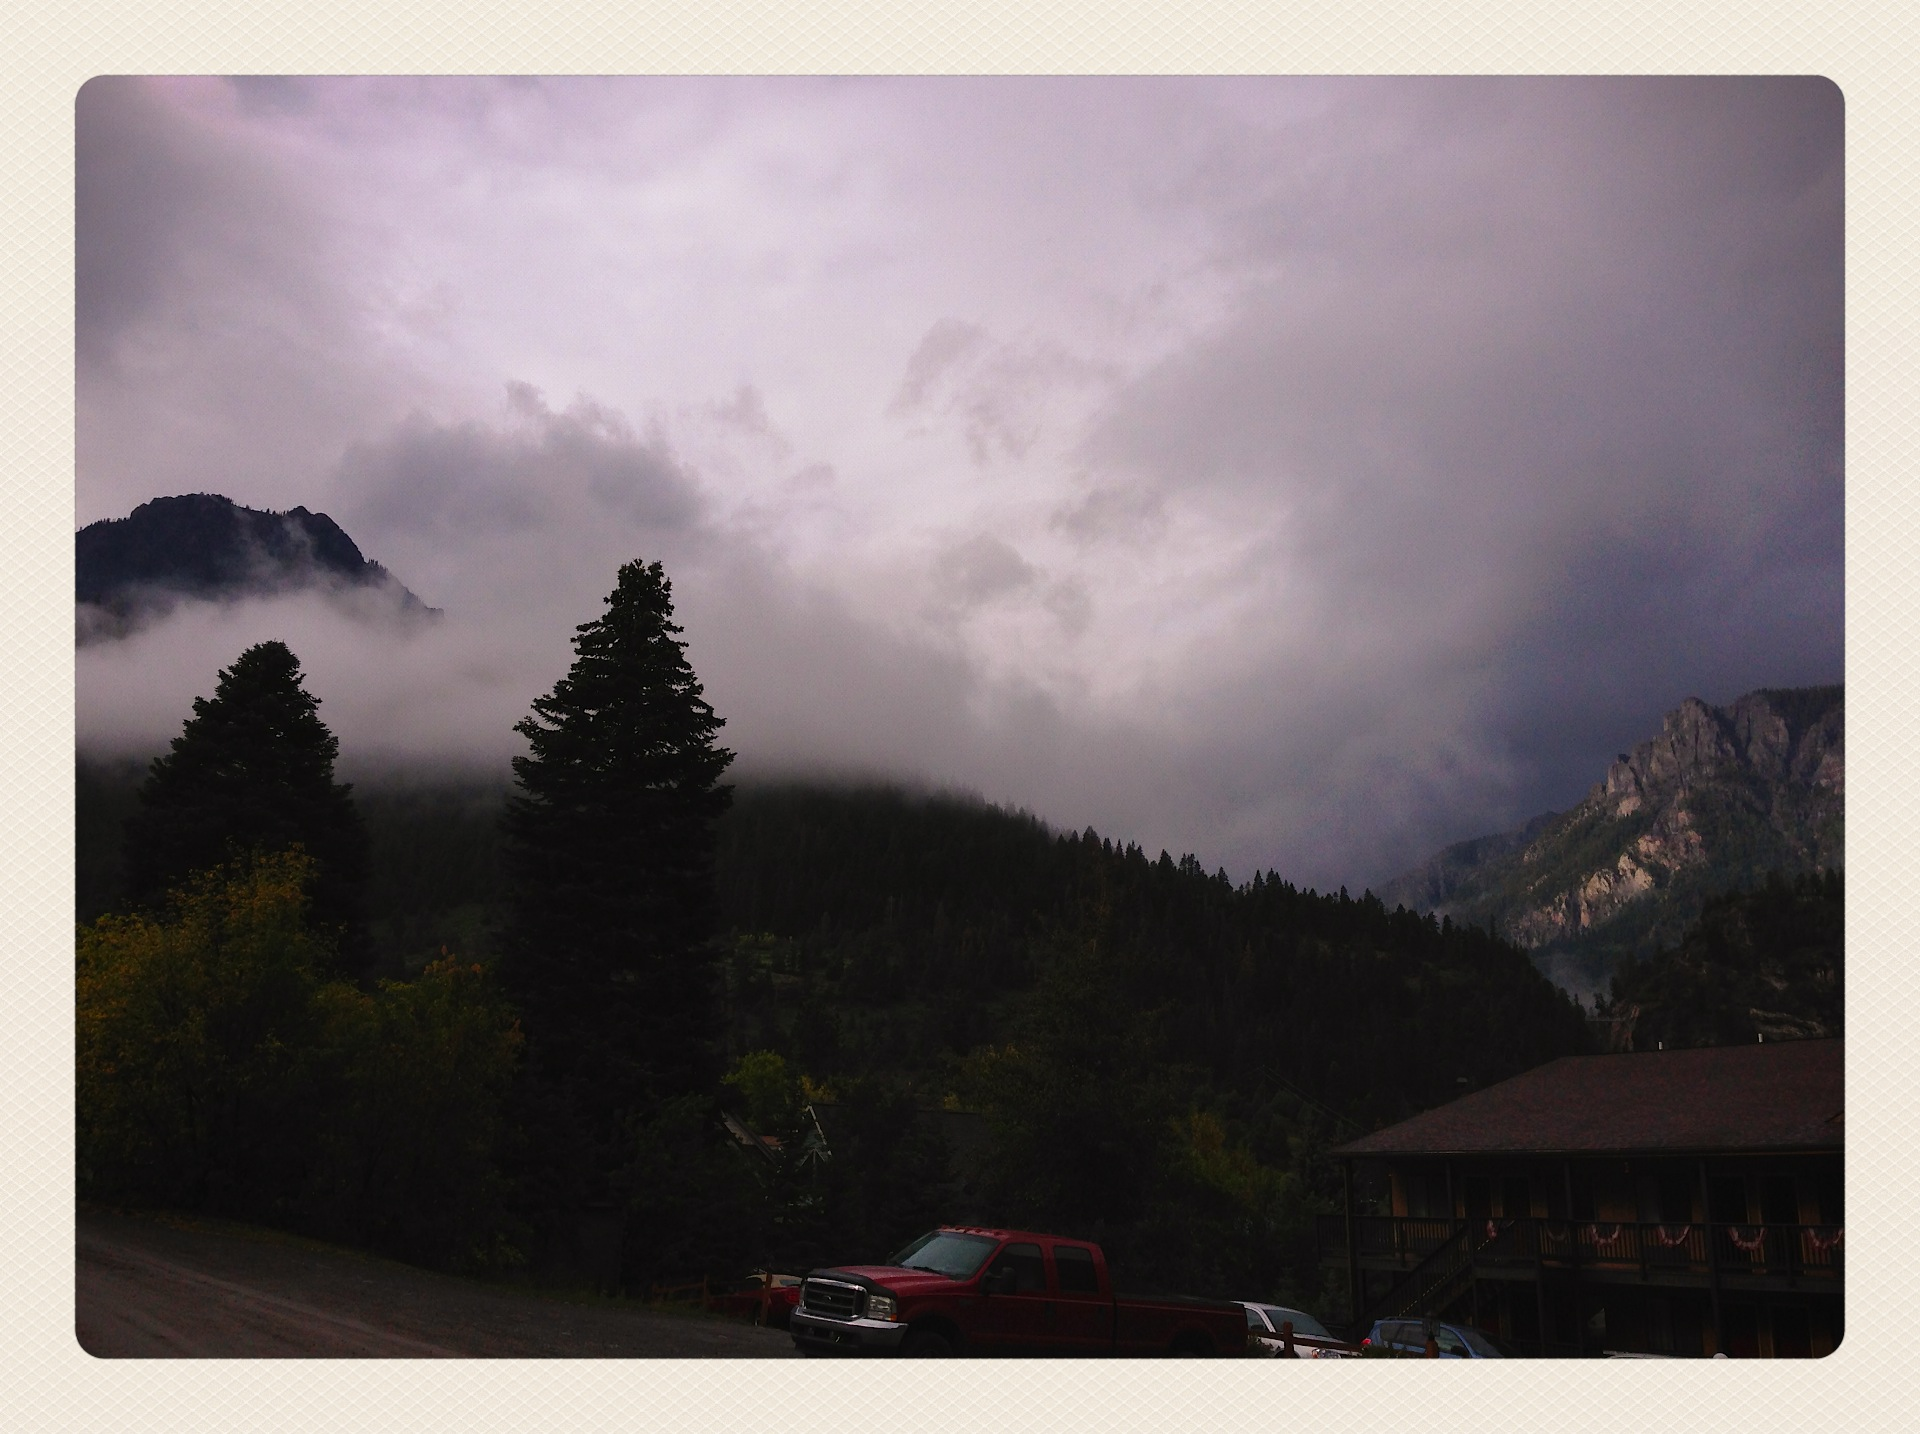 Creepy morning in Ouray for sure